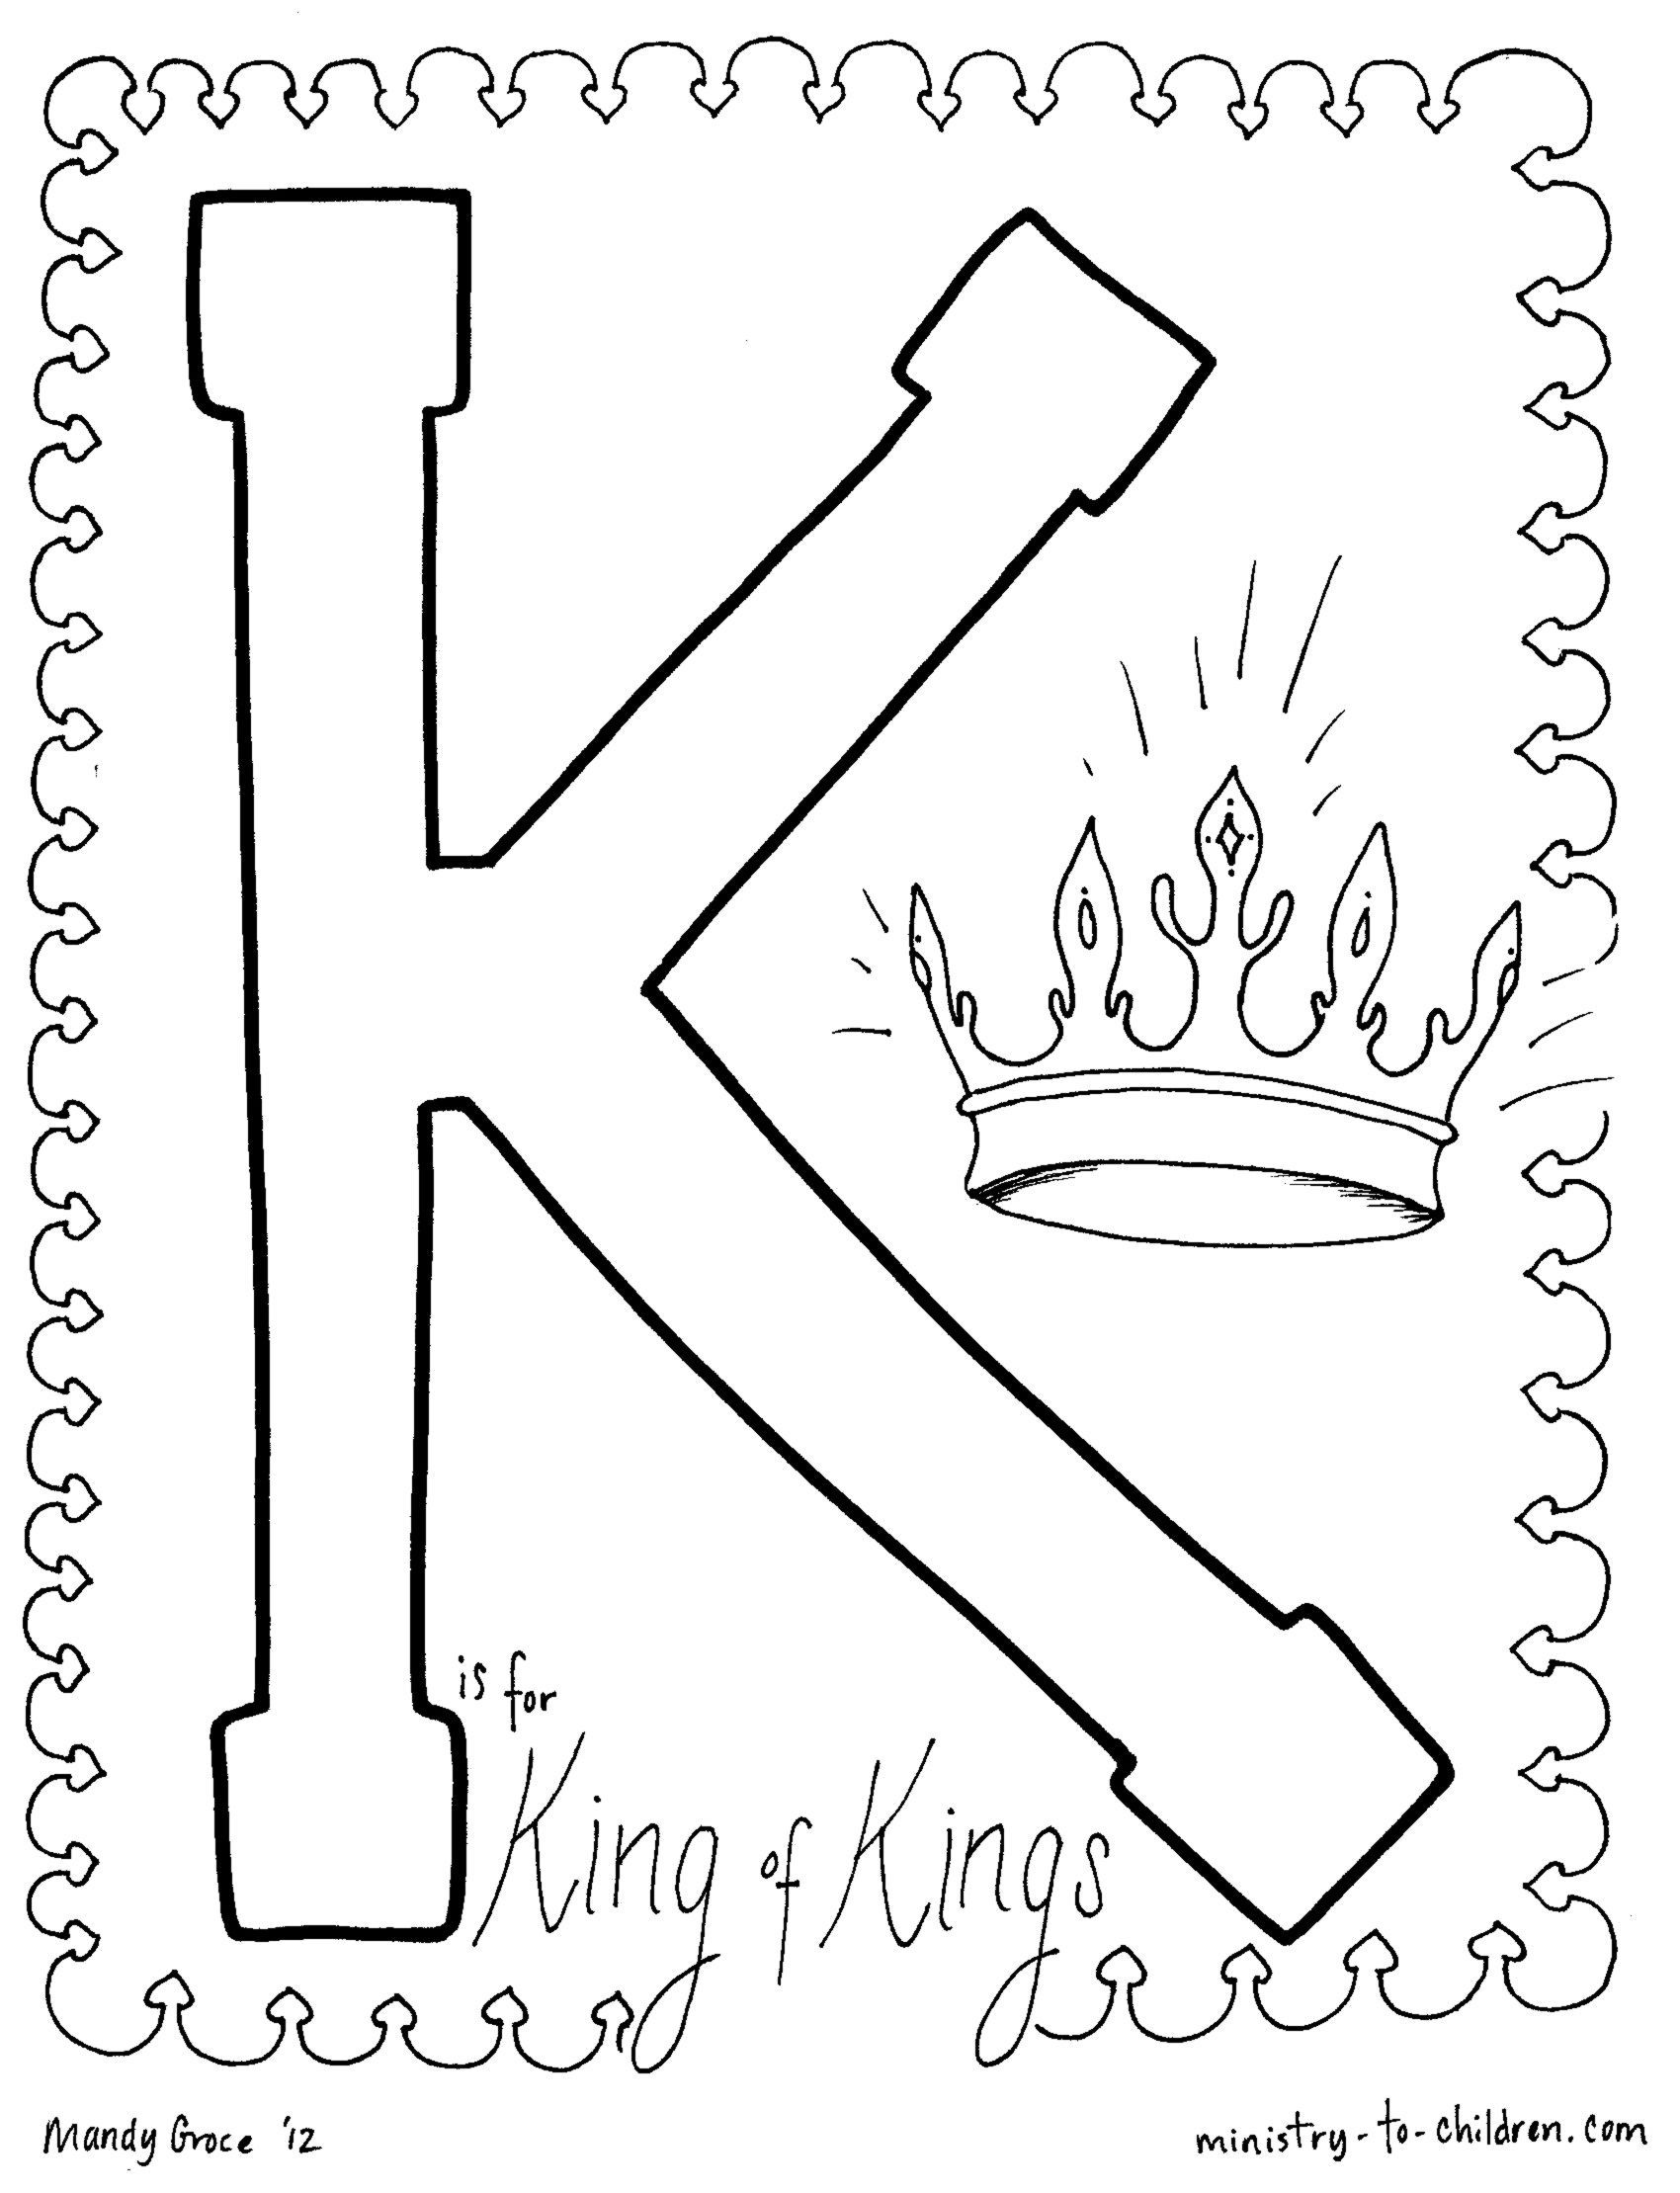 K is for King of Kings